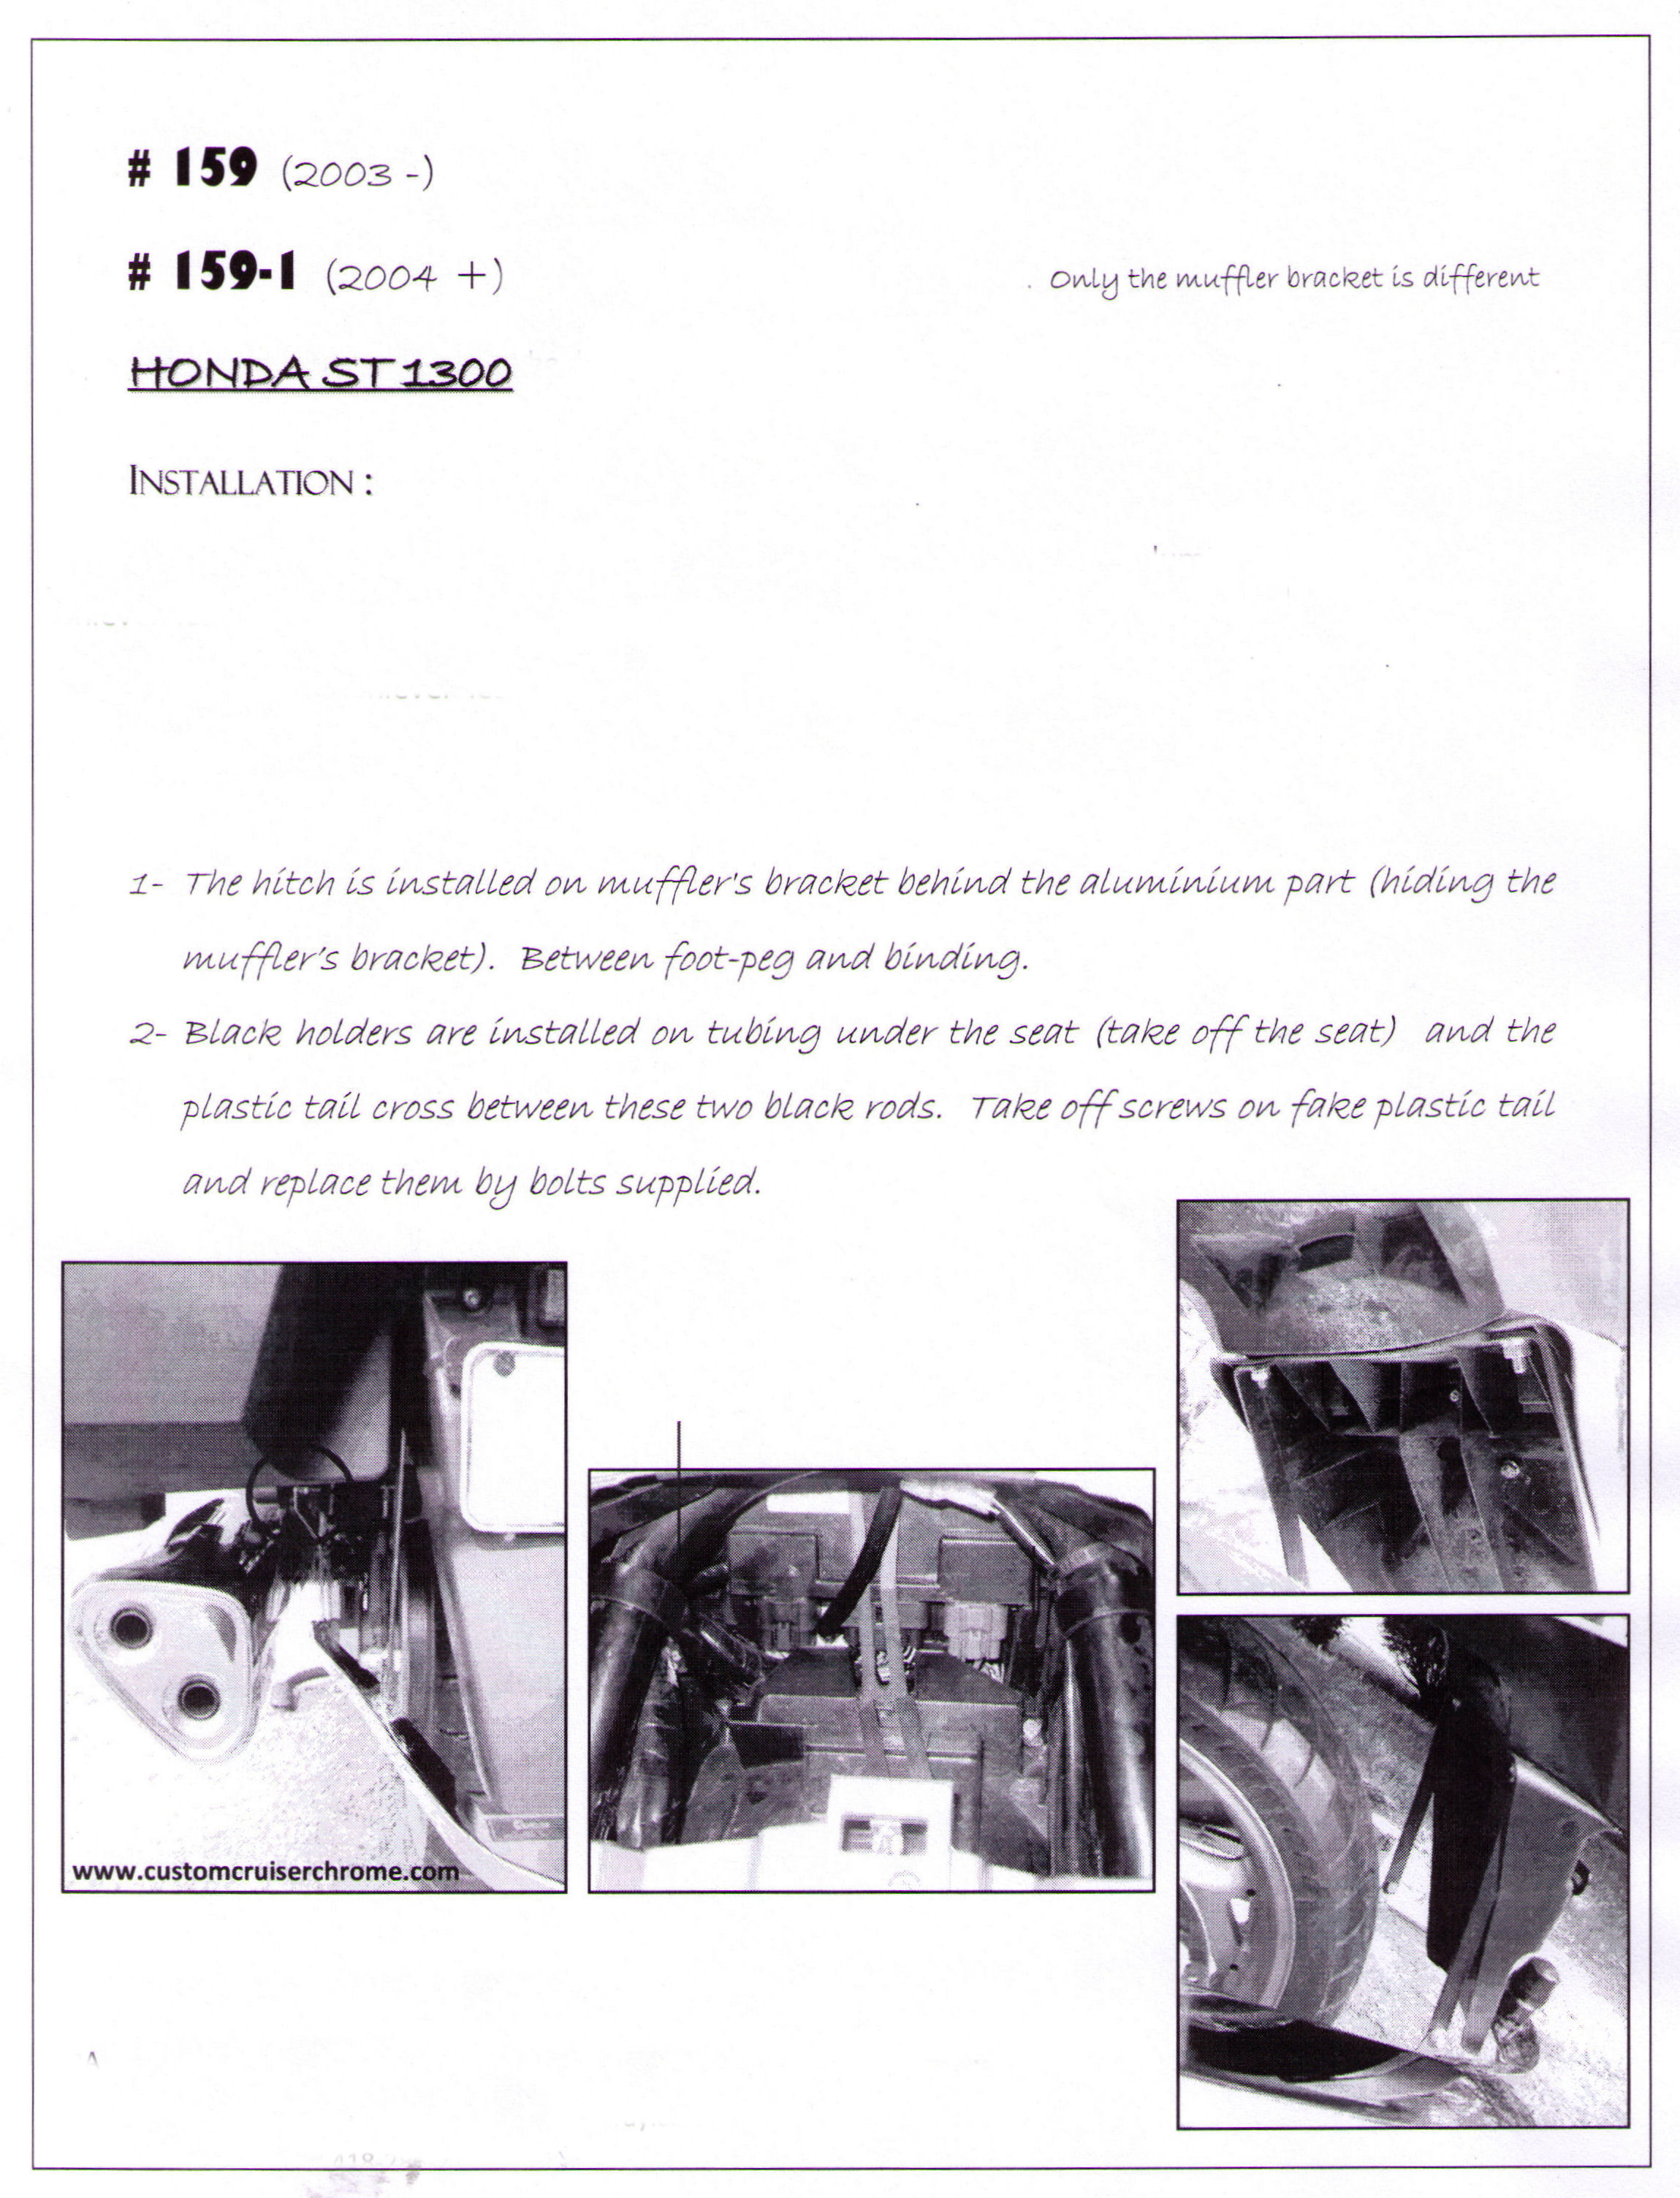 Installation Instructions Hitch 159 And 159-1 For Honda ST1300